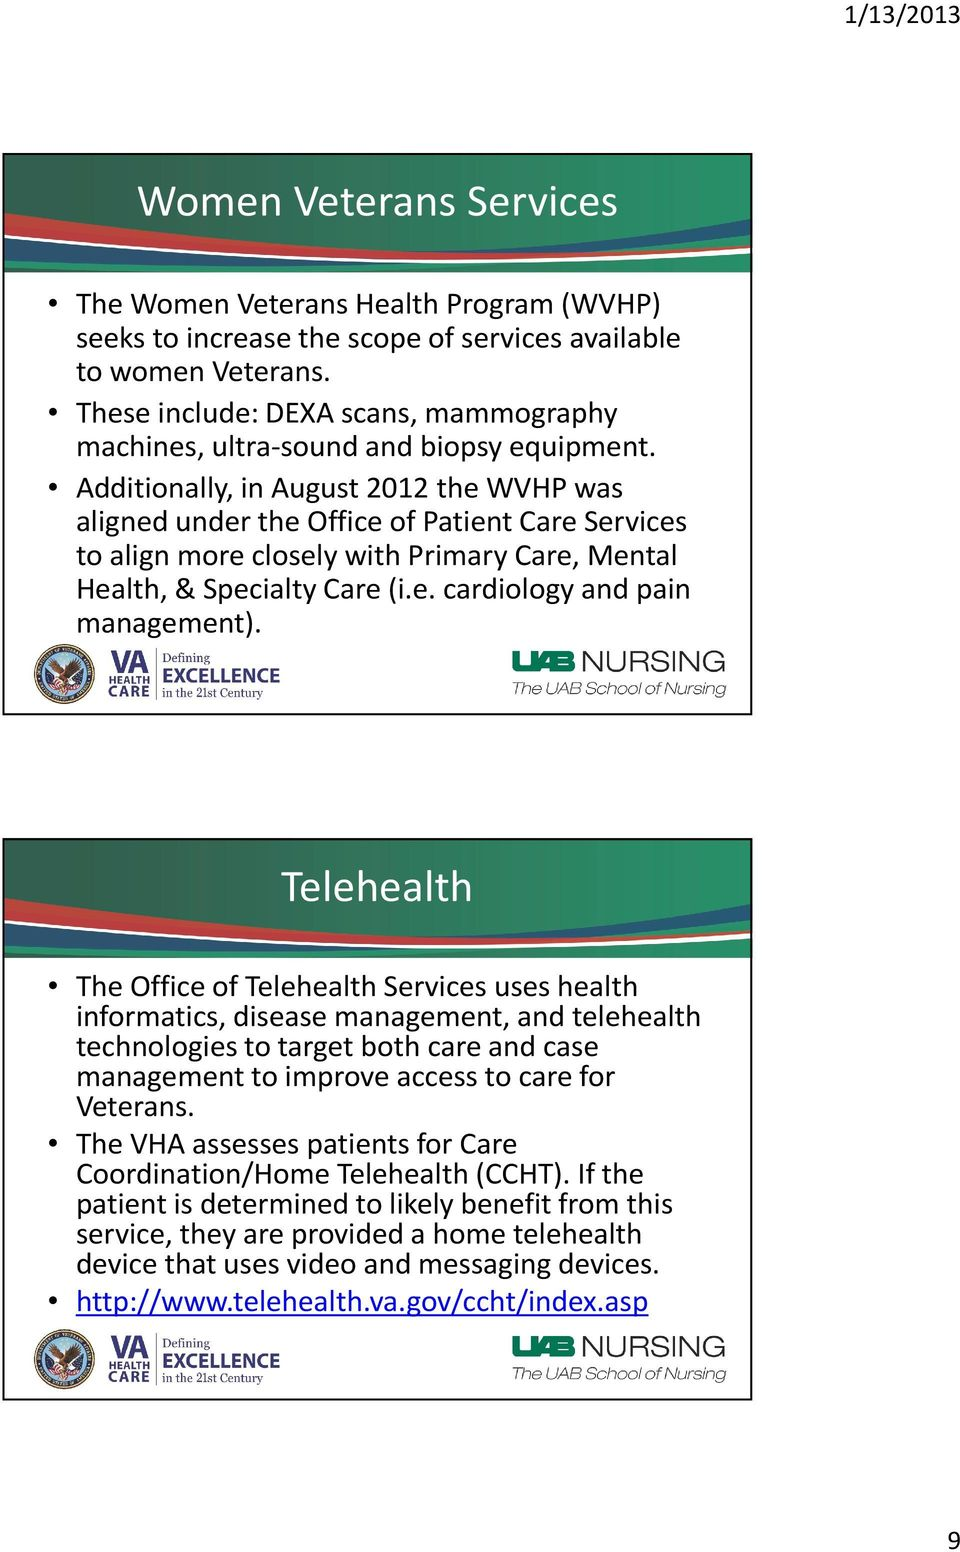 Additionally, in August 2012 the WVHP was aligned under the Office of Patient Care Services to align more closely with Primary Care, Mental Health, & Specialty Care (i.e. cardiology and pain management).